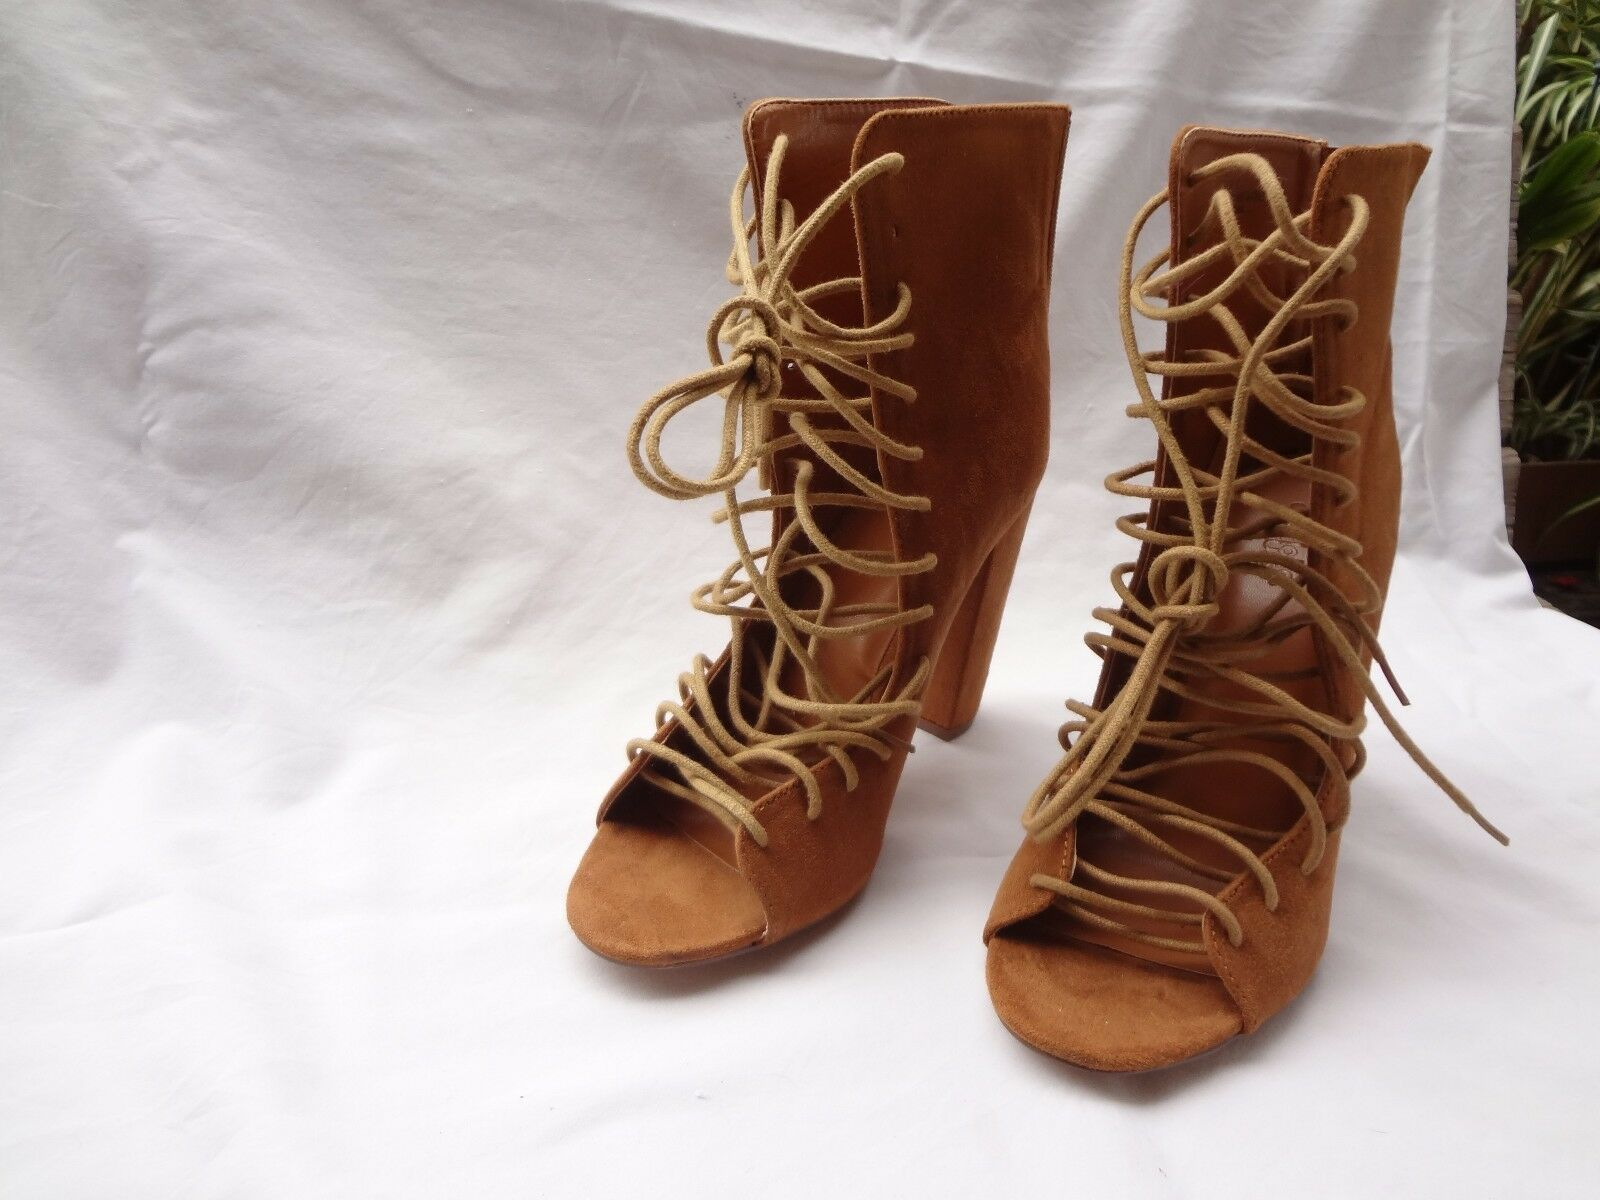 CHARLOTTE RUSSE CORSET LACE UP Peep Toe ANKLE BOOT Chunky Heel BROWN SIZE 9 MED